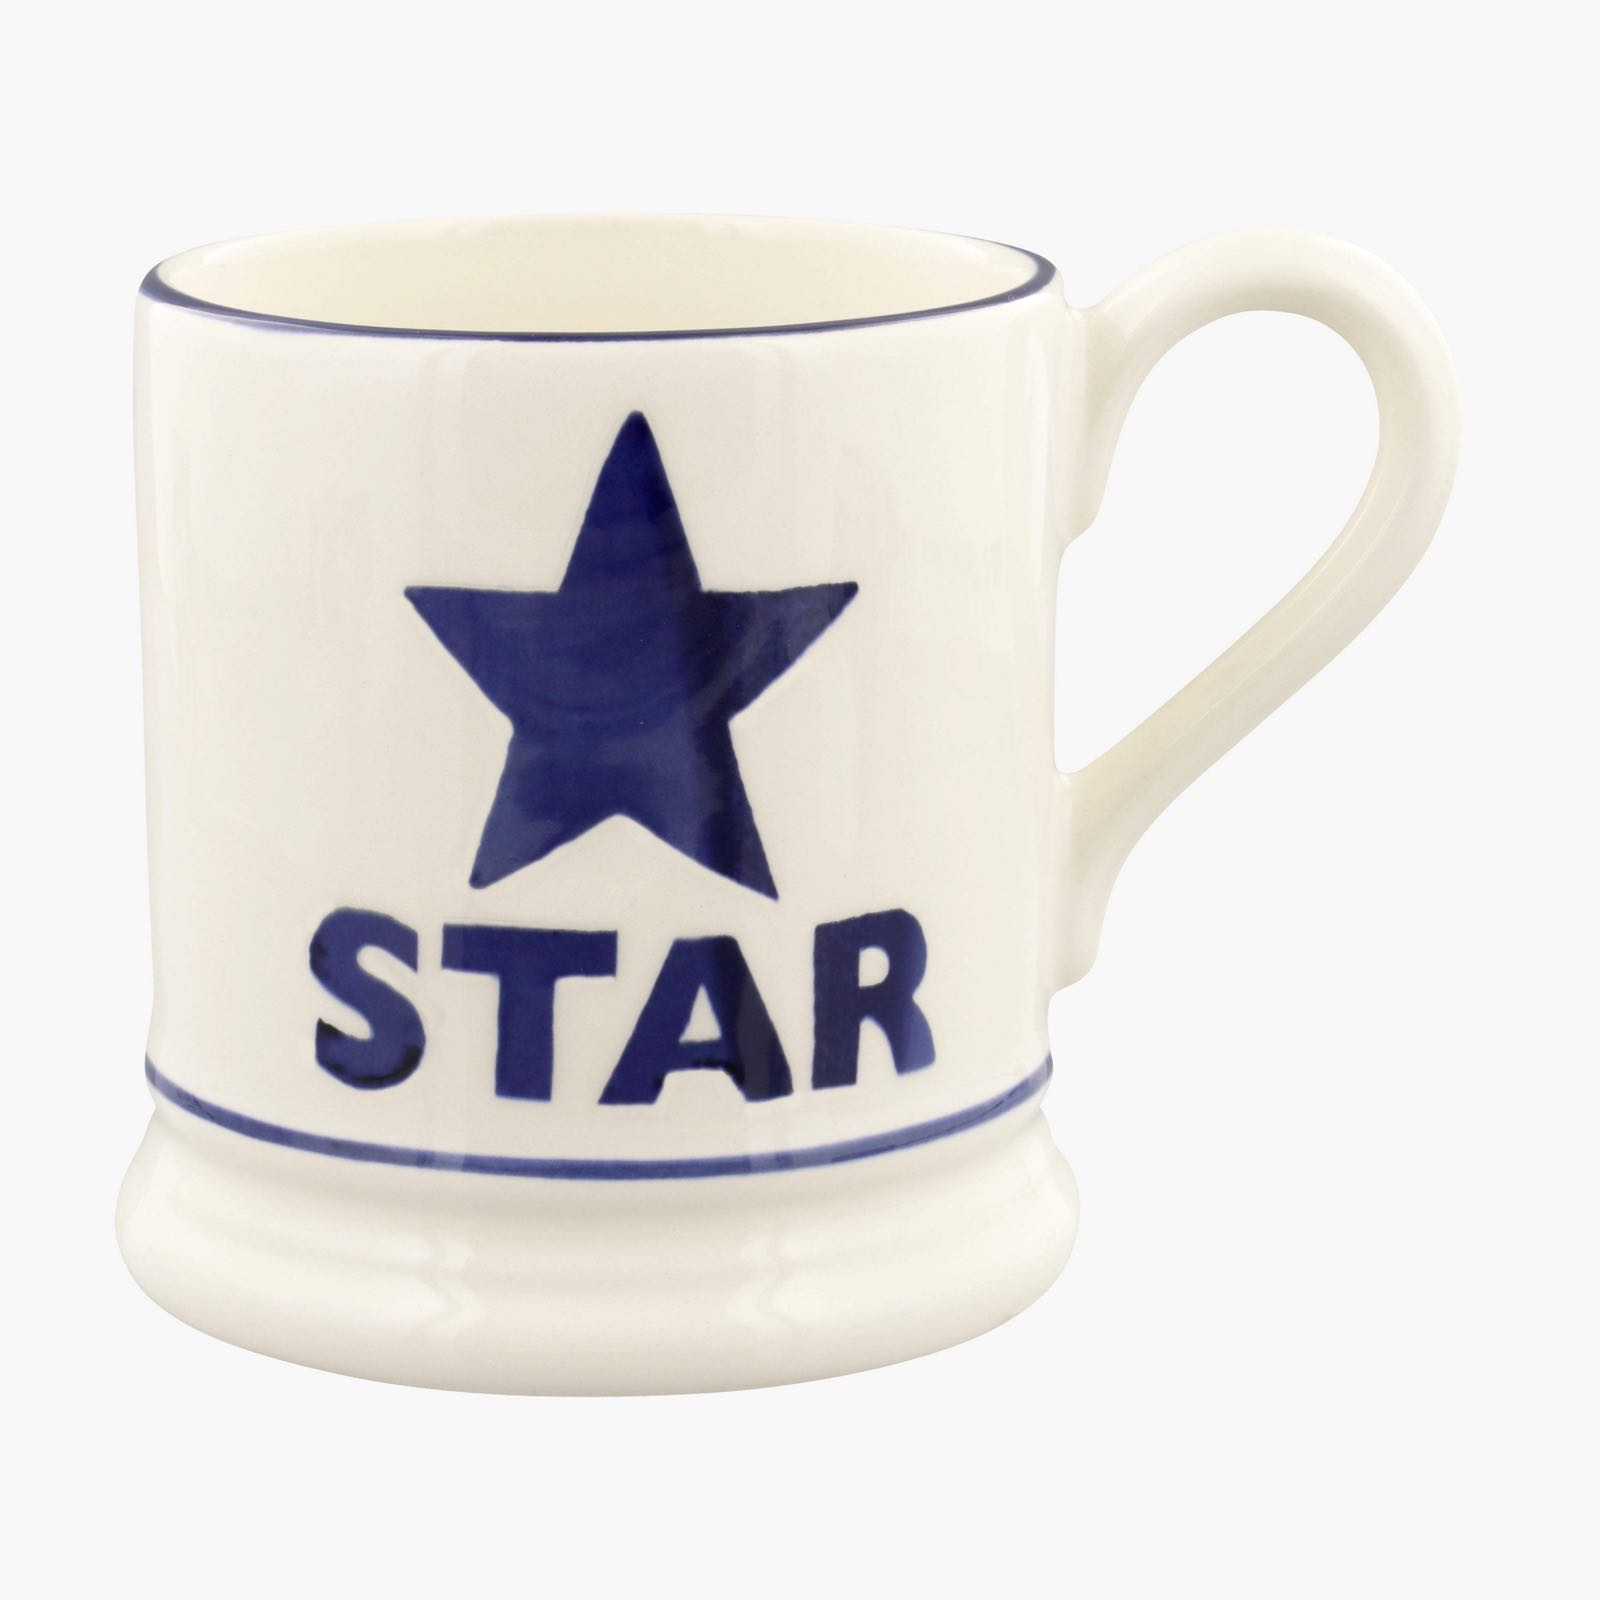 Emma bridgewater bright star 1/2 pint mug